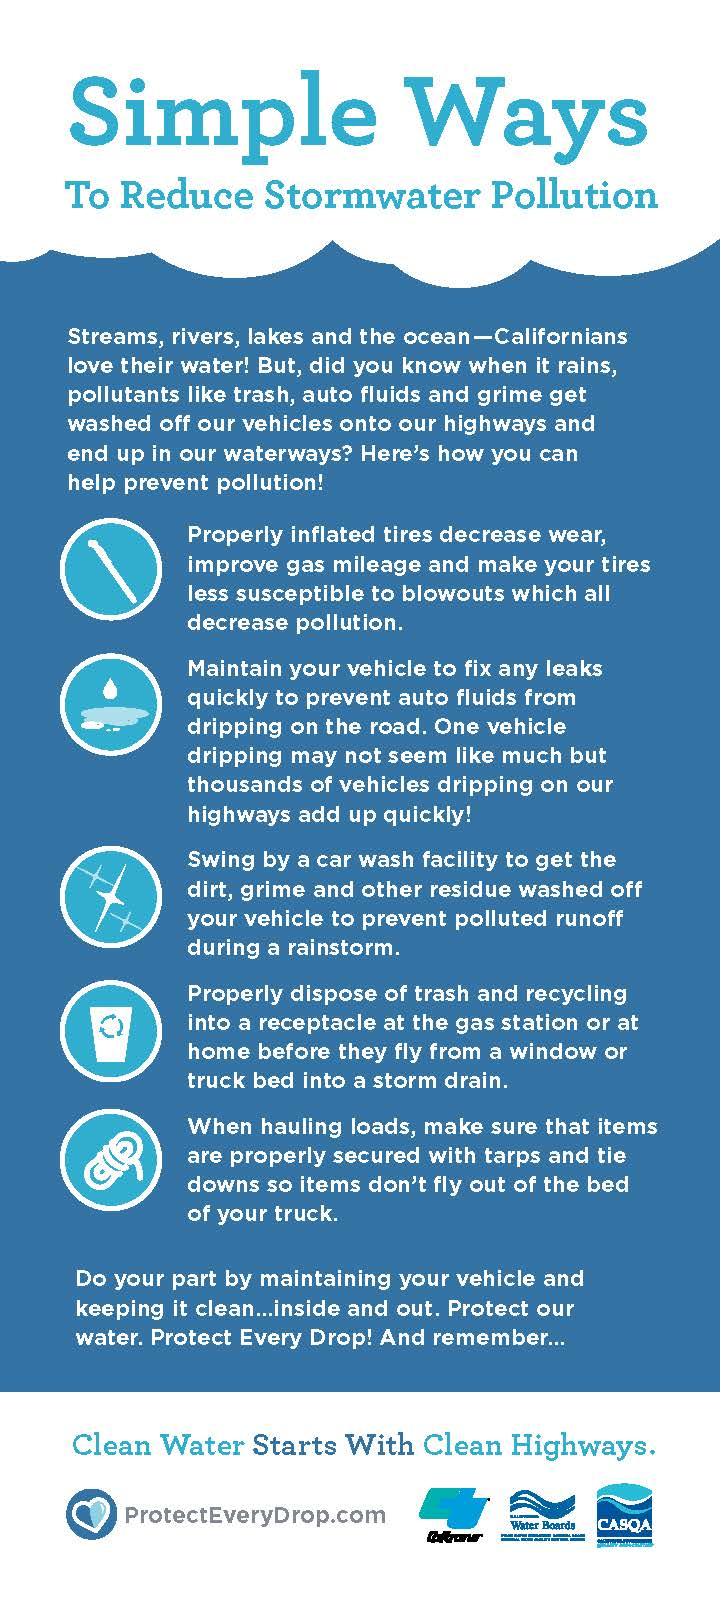 Tips to reduce stormwater pollution